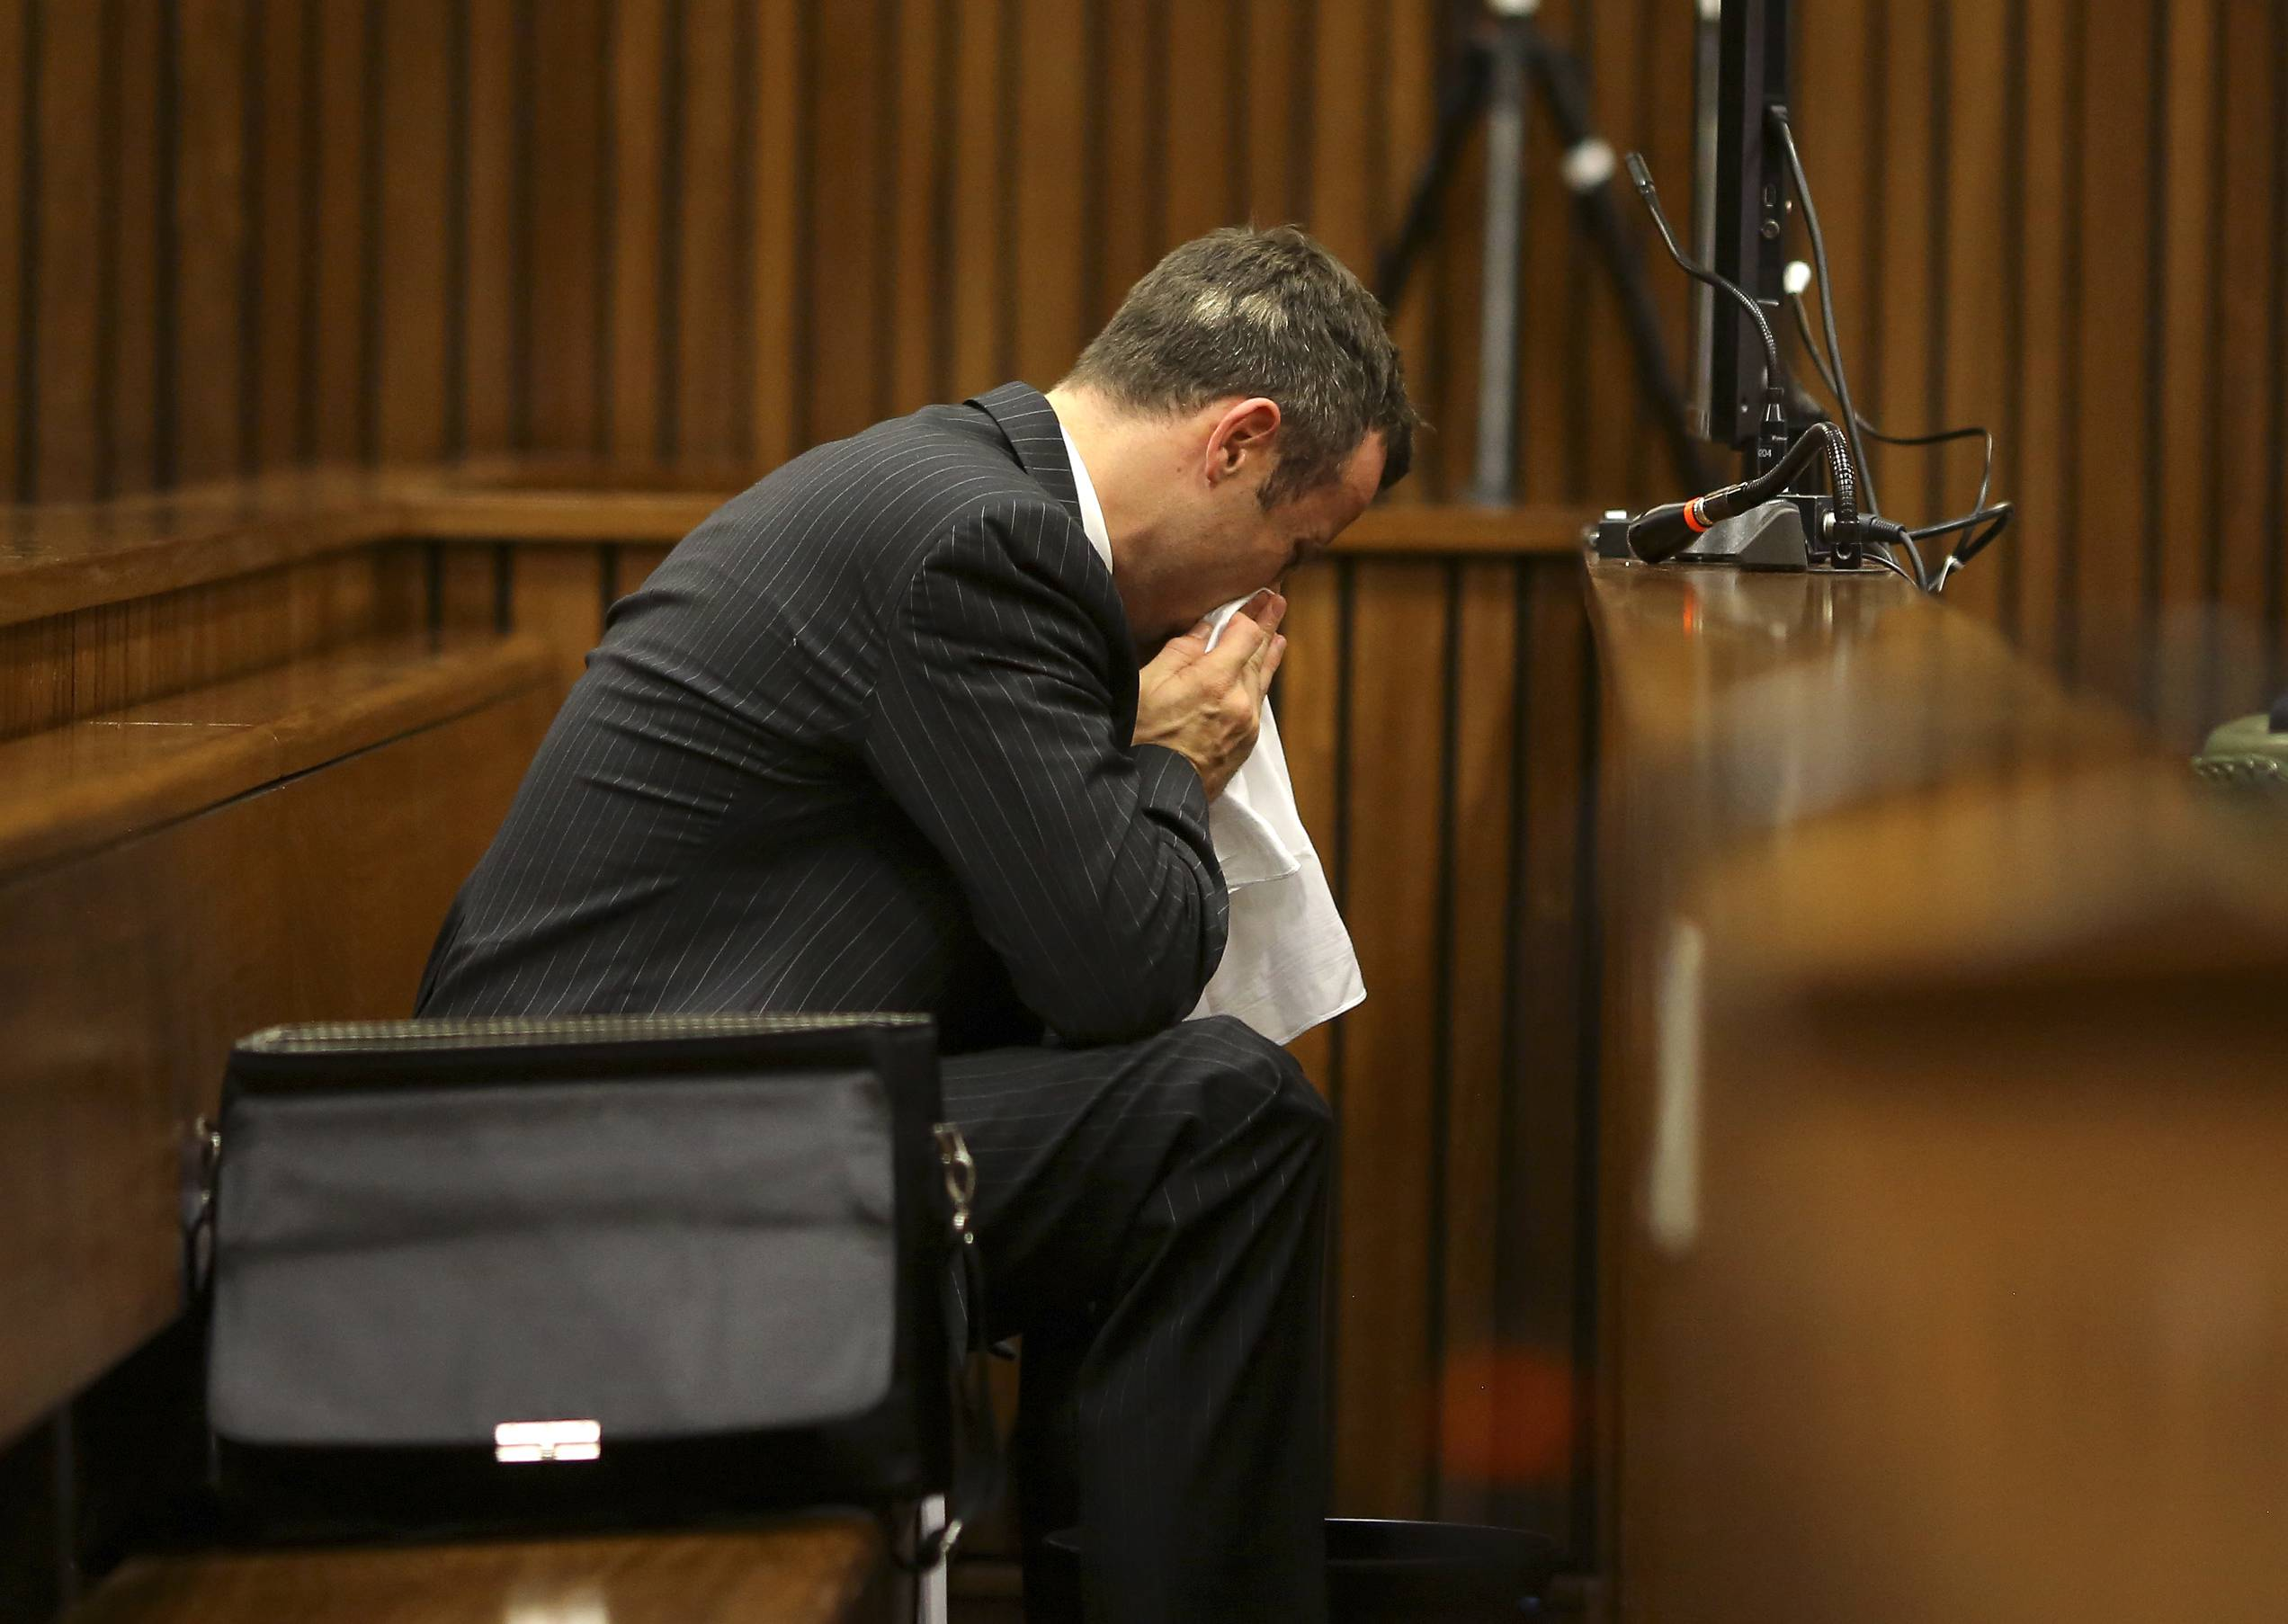 Oscar Pistorius blows his nose  after reaching for a bucket as he listened to cross questioning about the events surrounding the shooting death of his girlfriend Reeva Steenkamp, in his second week in court during his trial in Pretoria, South Africa, Monday.